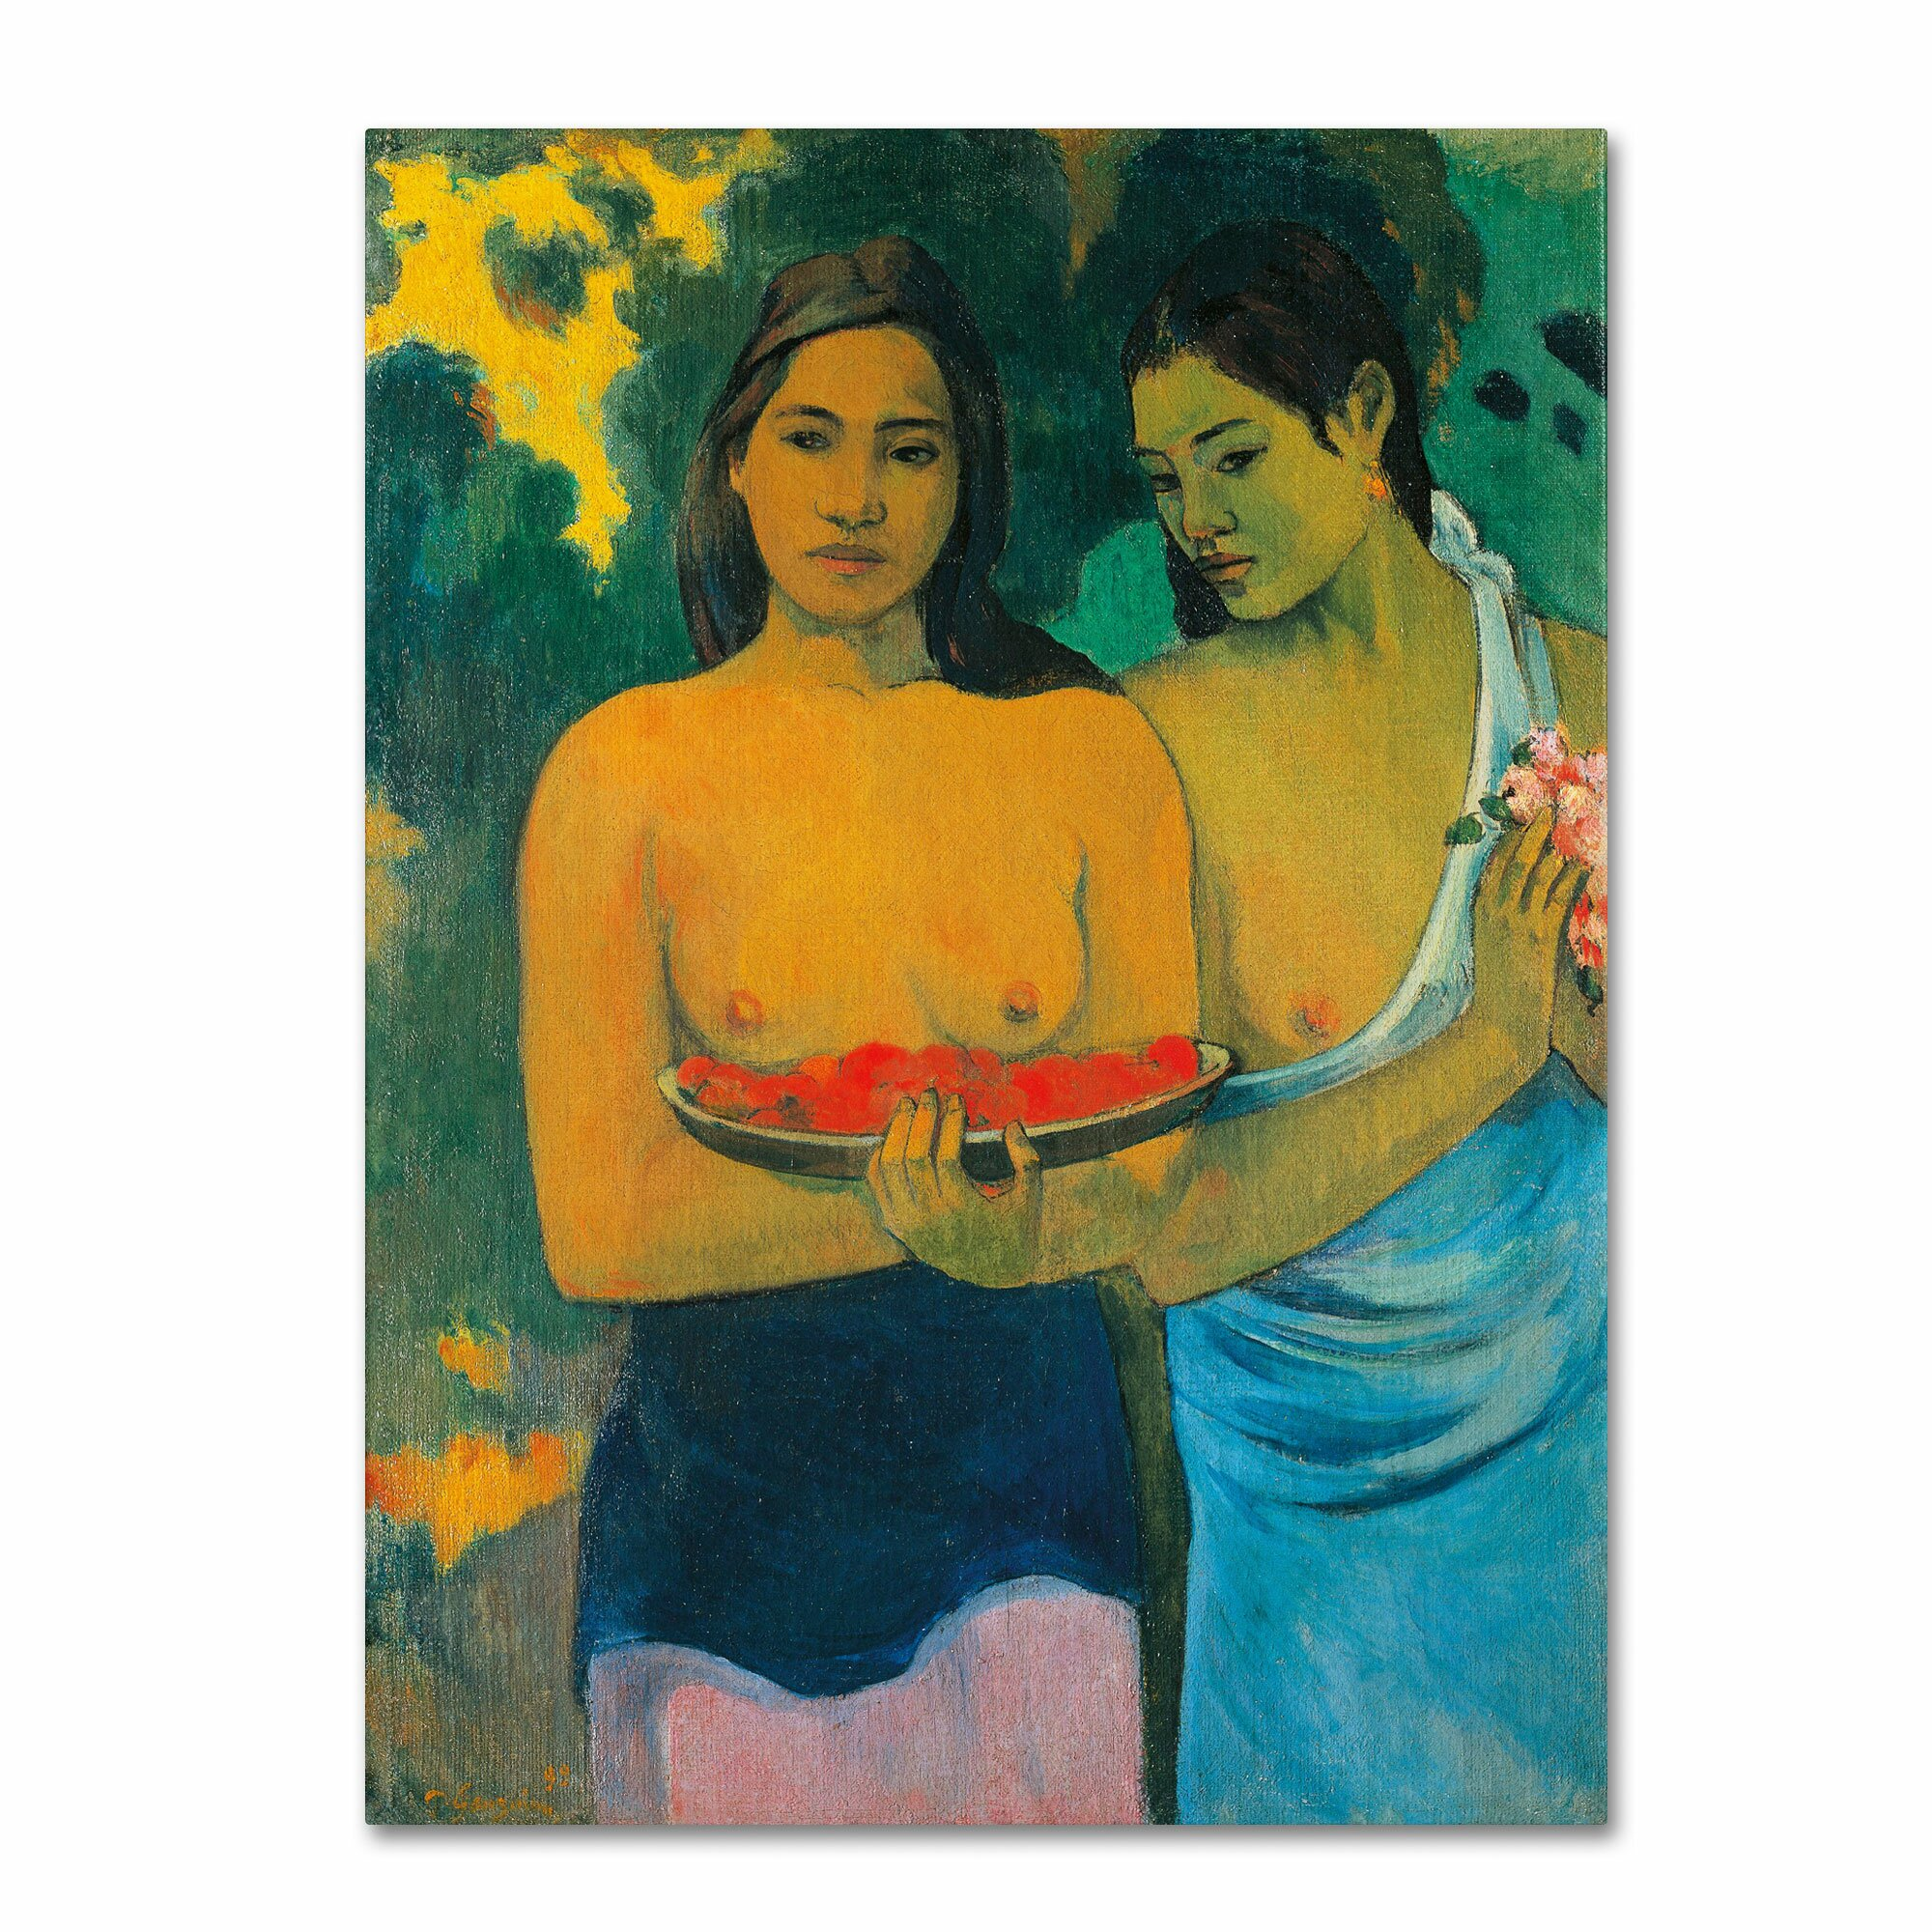 Trademark Art 'Two Tahitian Women 1899' by Paul Gauguin Painting Print on Canvas & Reviews | Wayfair